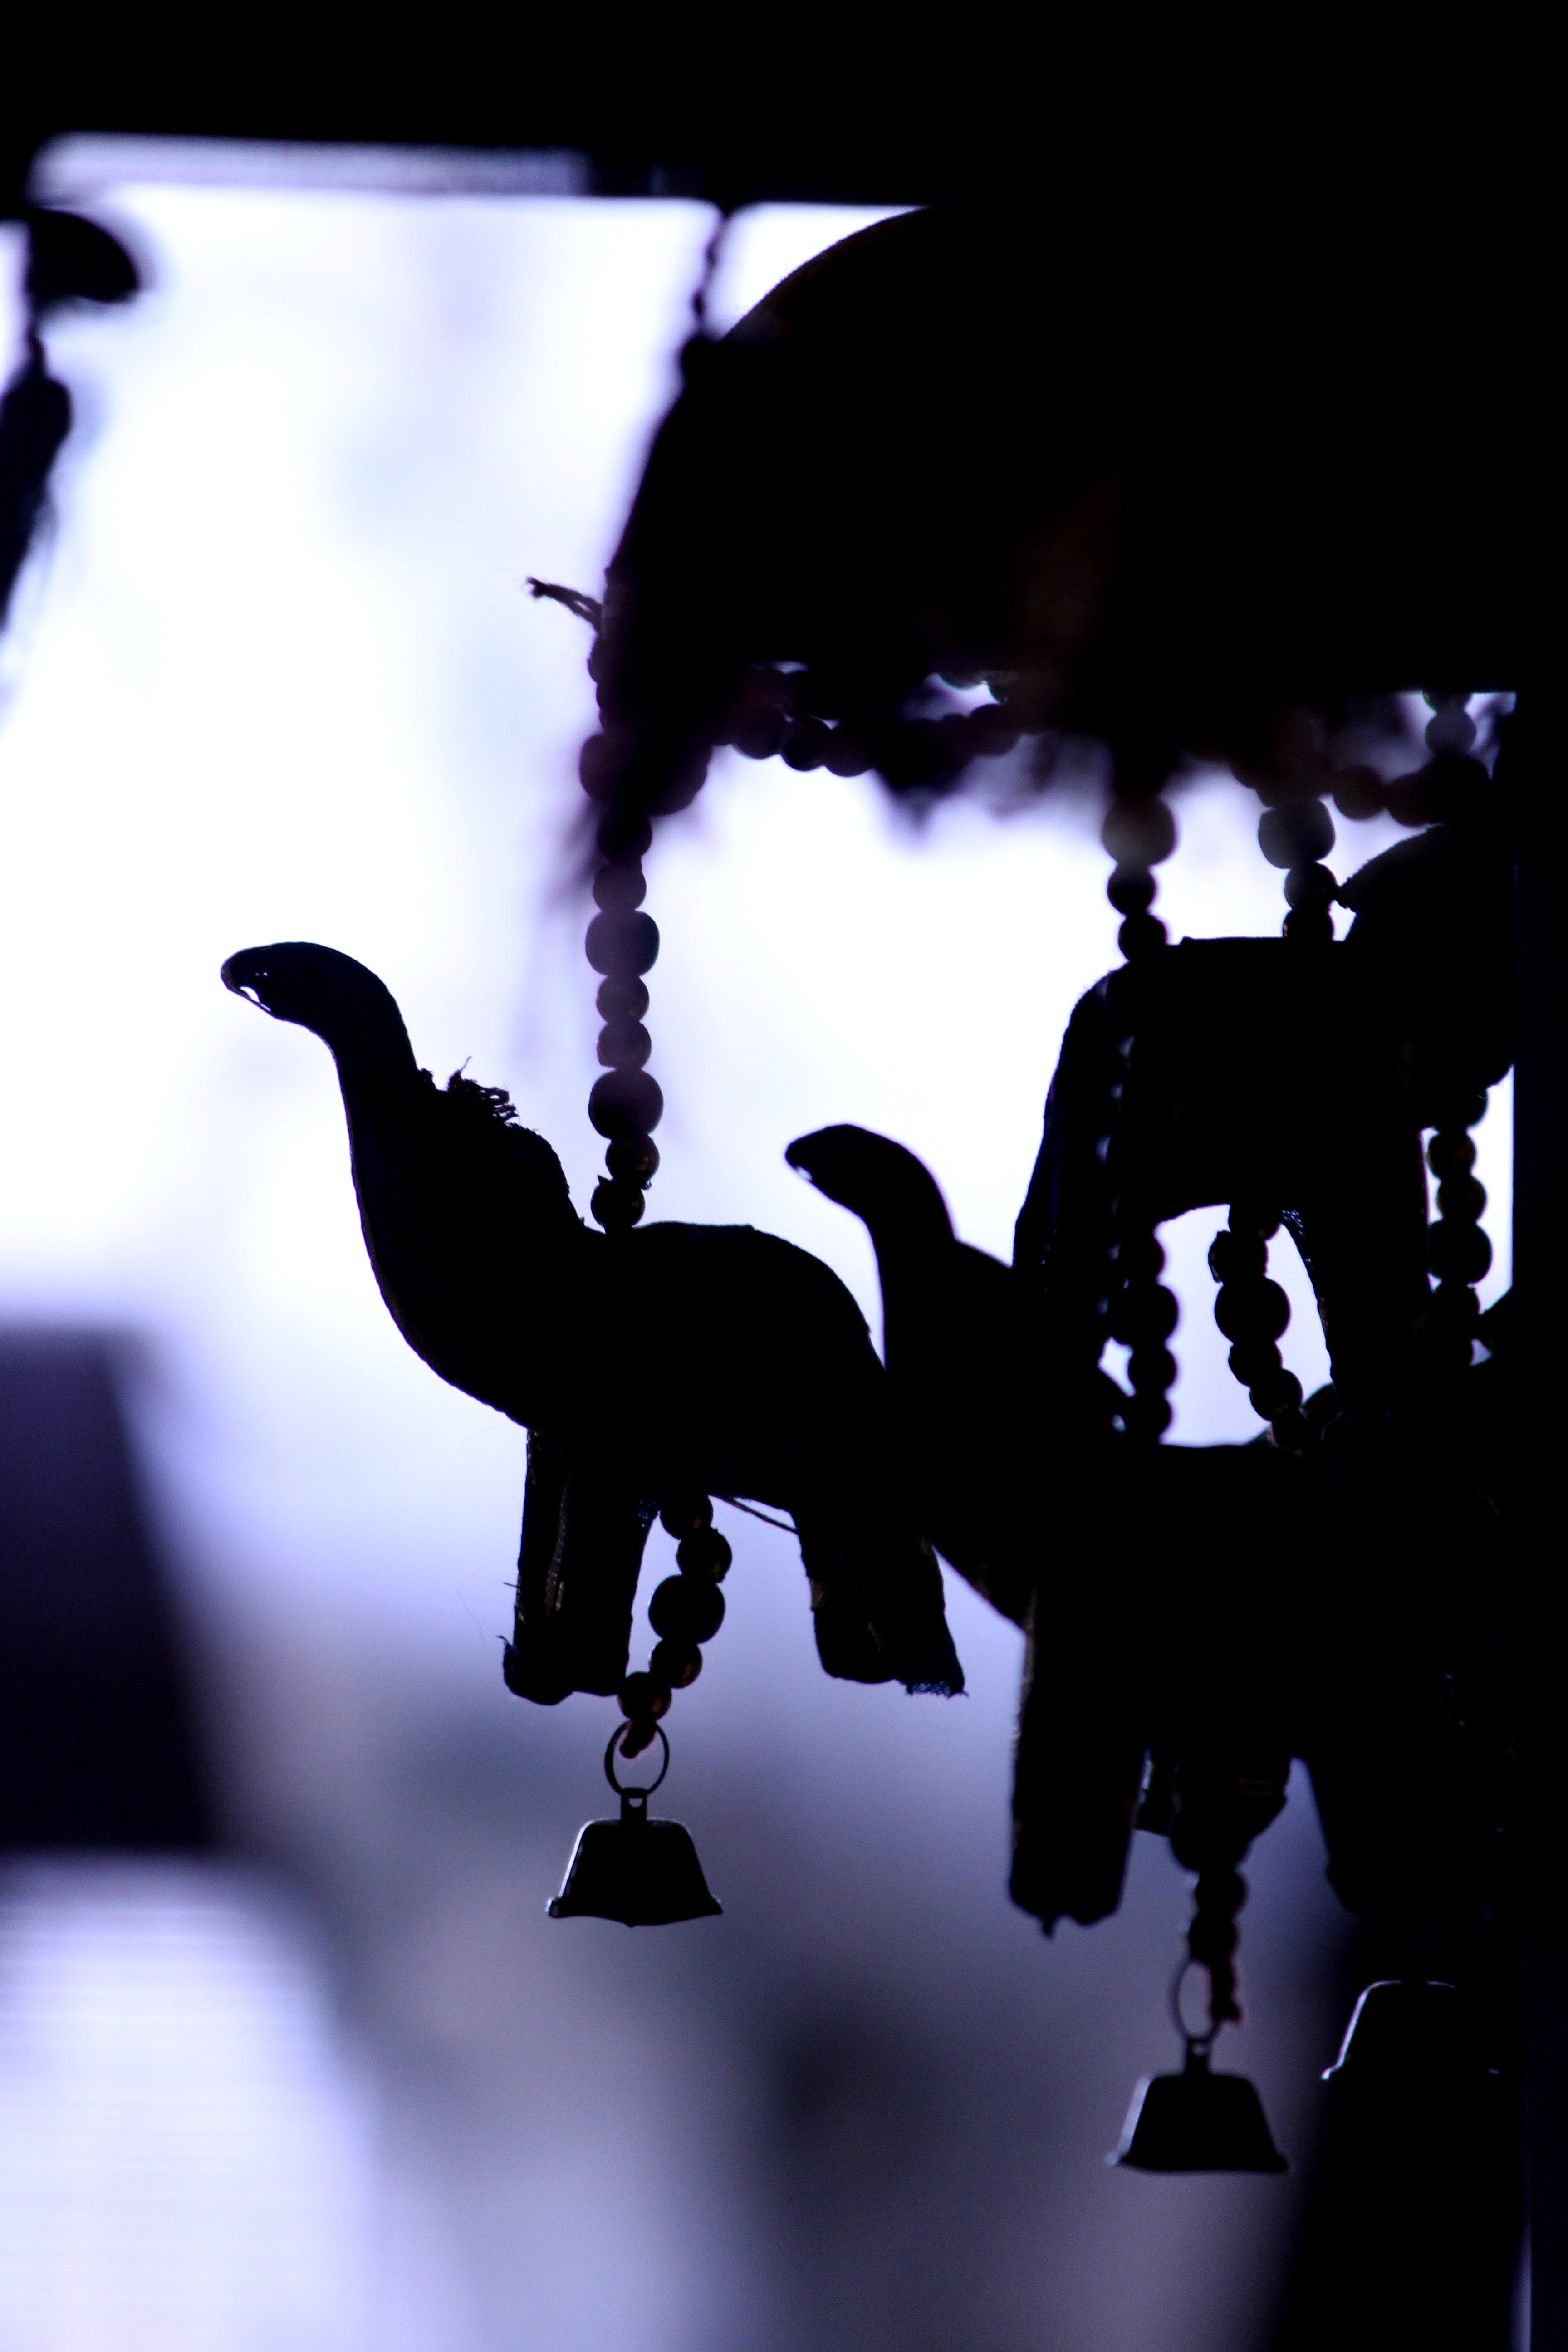 Silhouette Of Hanging Decors